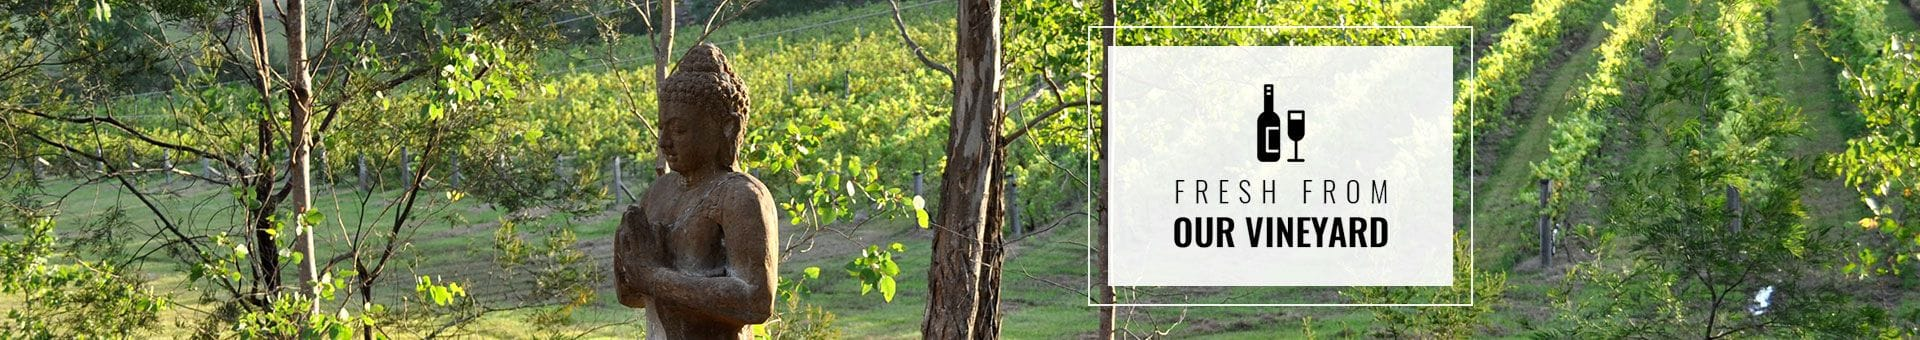 Wines fresh from our vineyard at Splitrock Vineyard | Howes Valley Winery | NSW wineries and vineyards